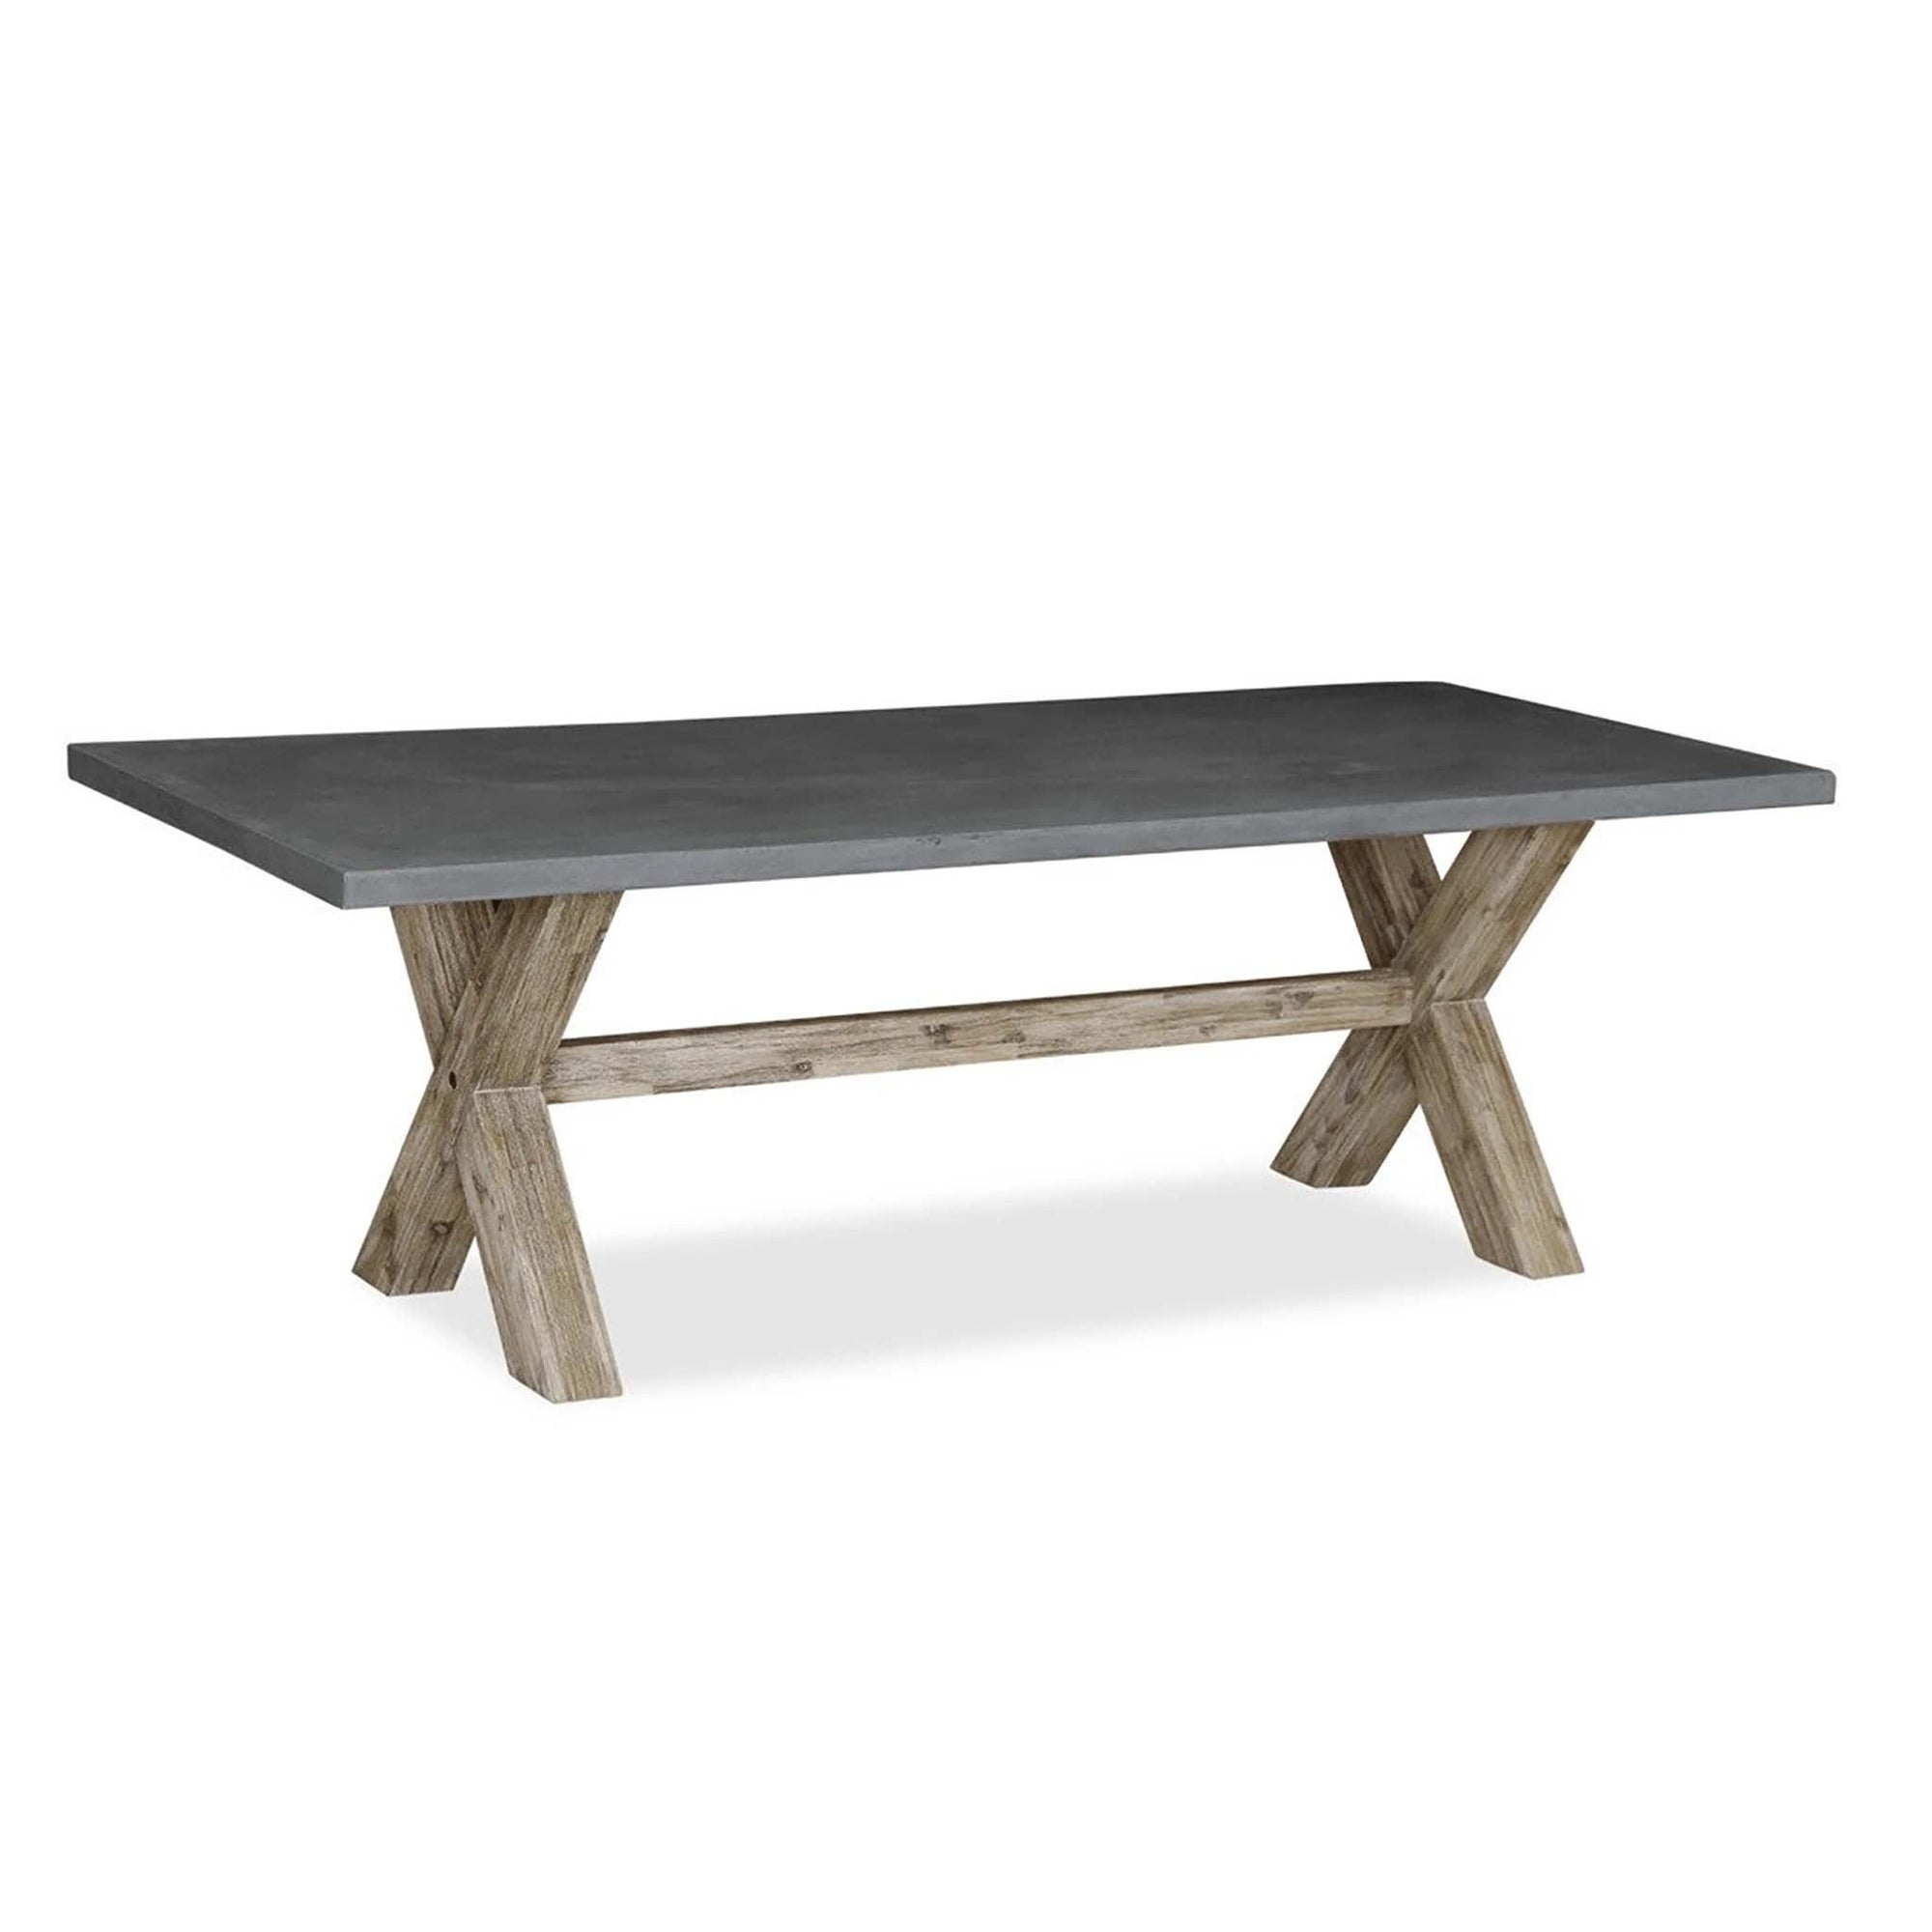 Rock Concrete 190cm Dining Table by Roseland Furniture